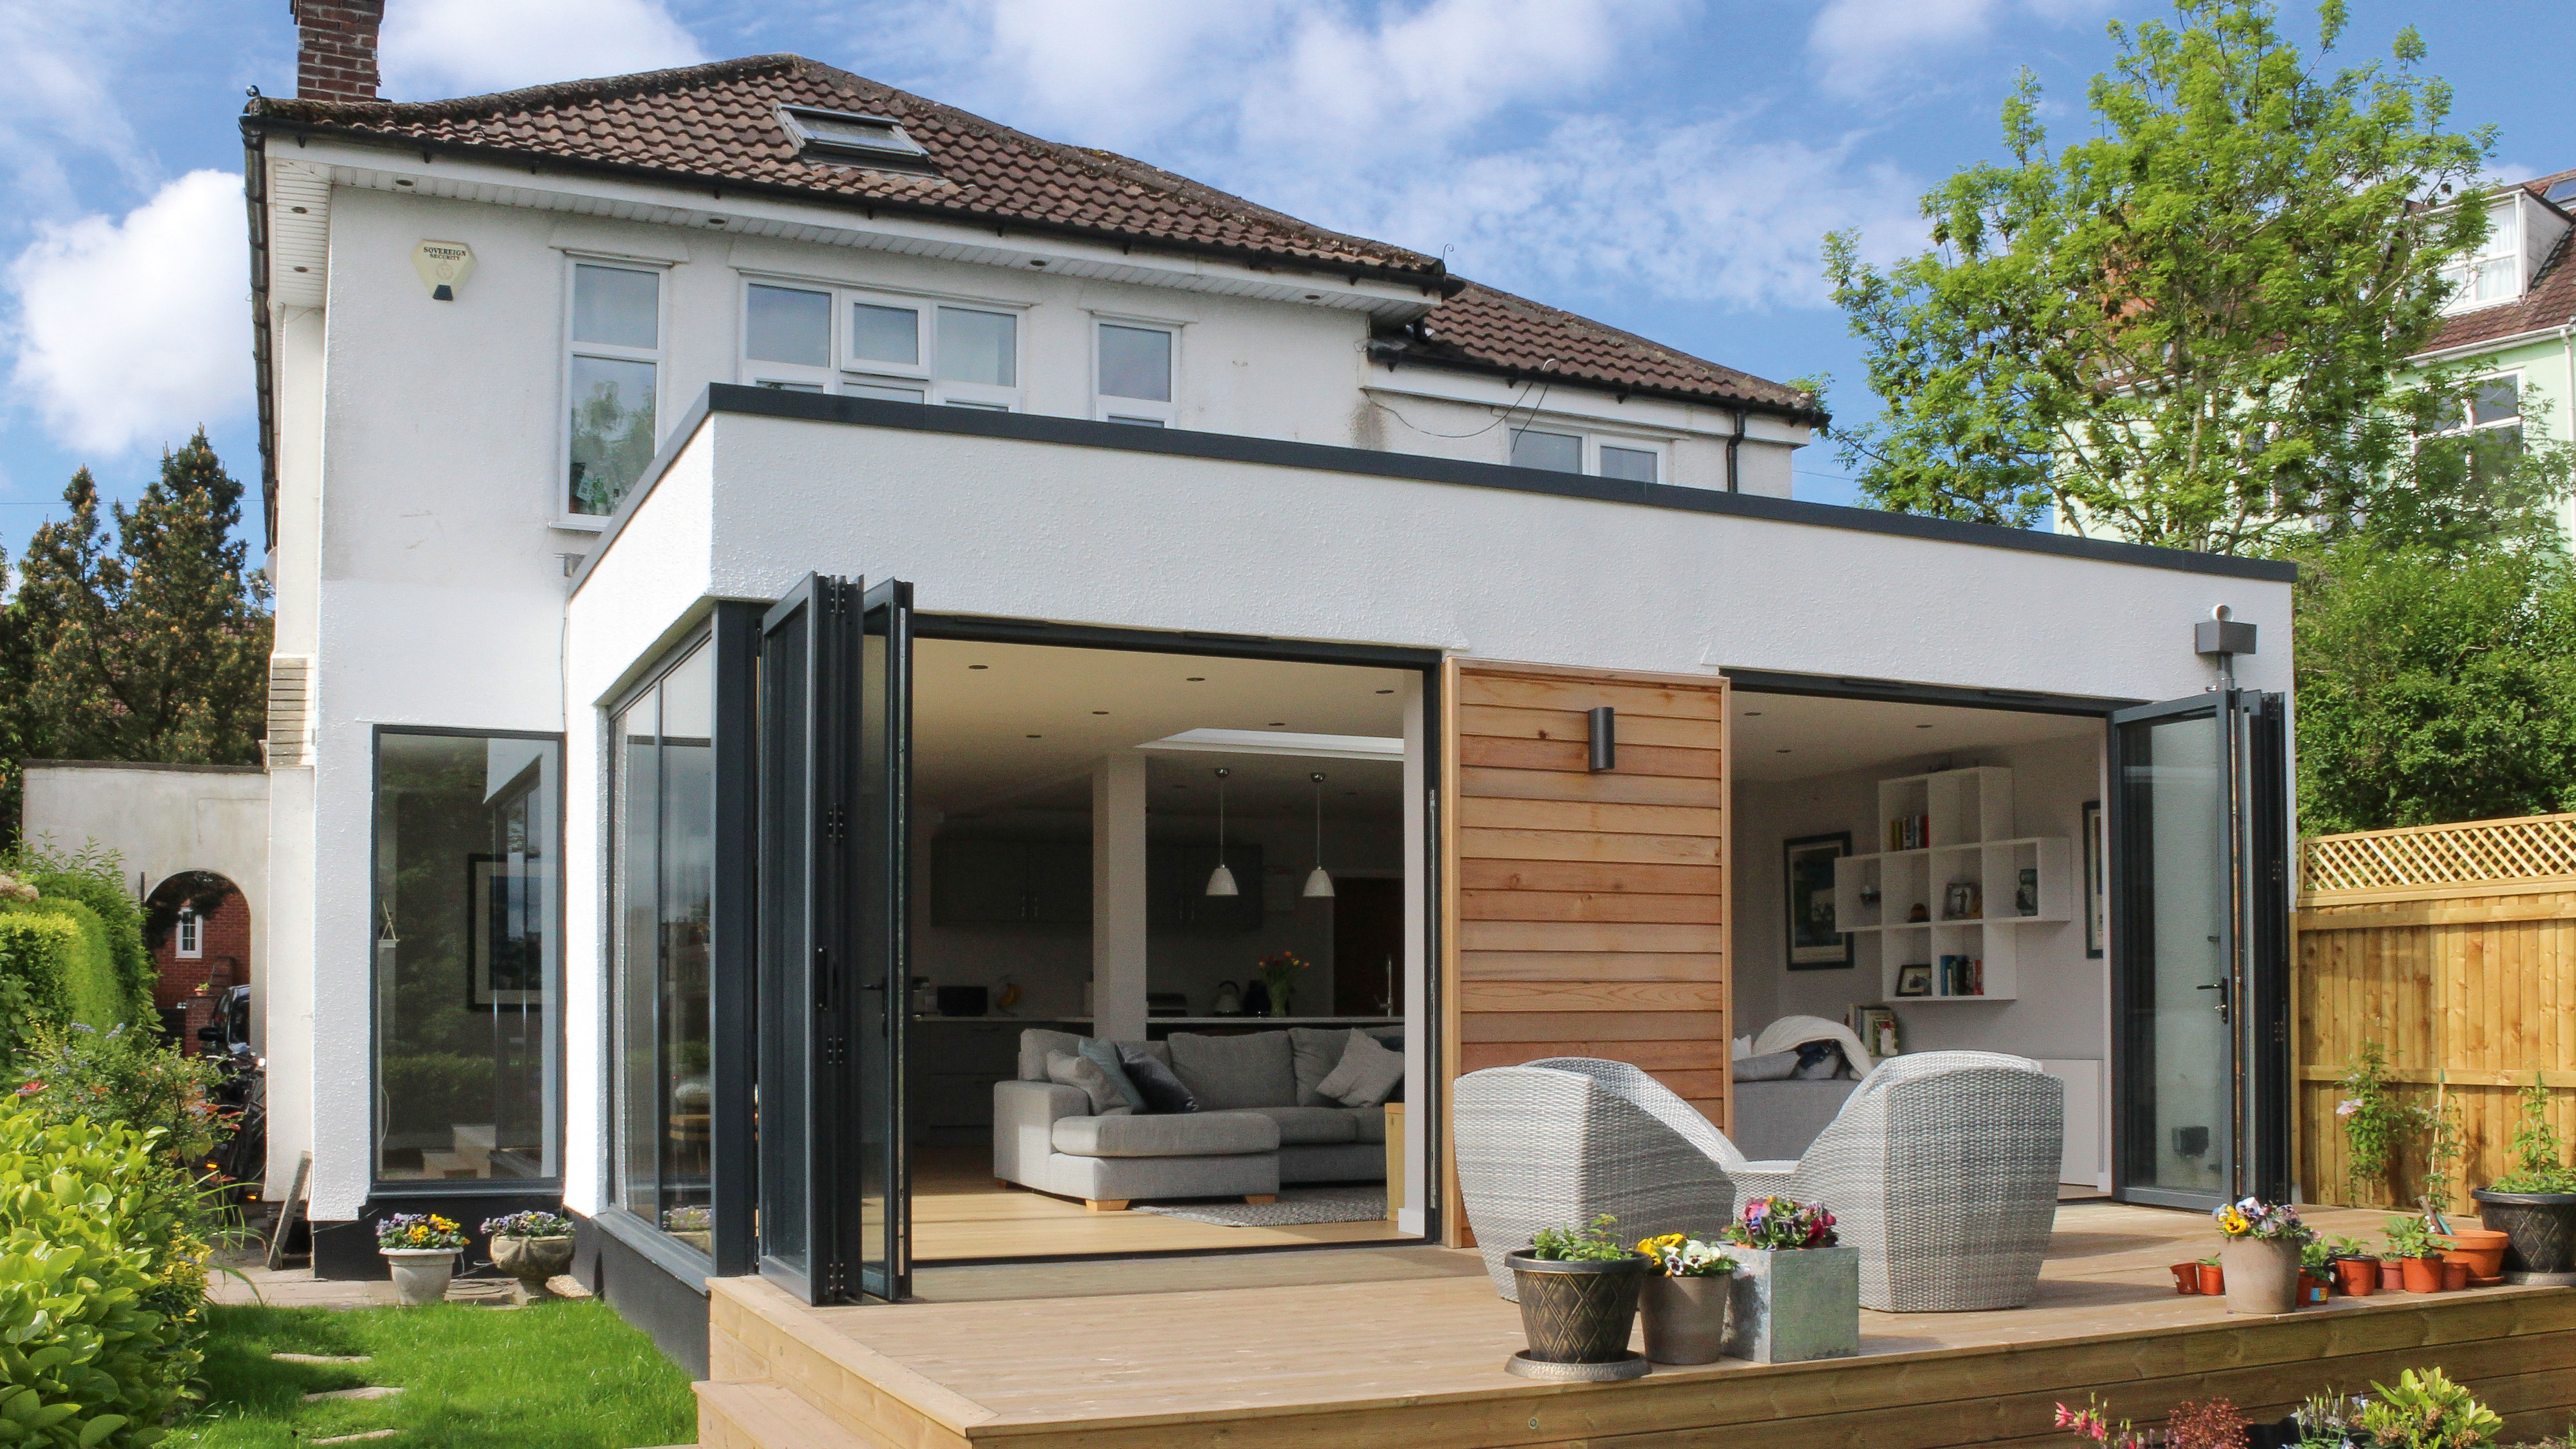 15 Single Storey Rear Extension Ideas Under 100 000 Real Homes